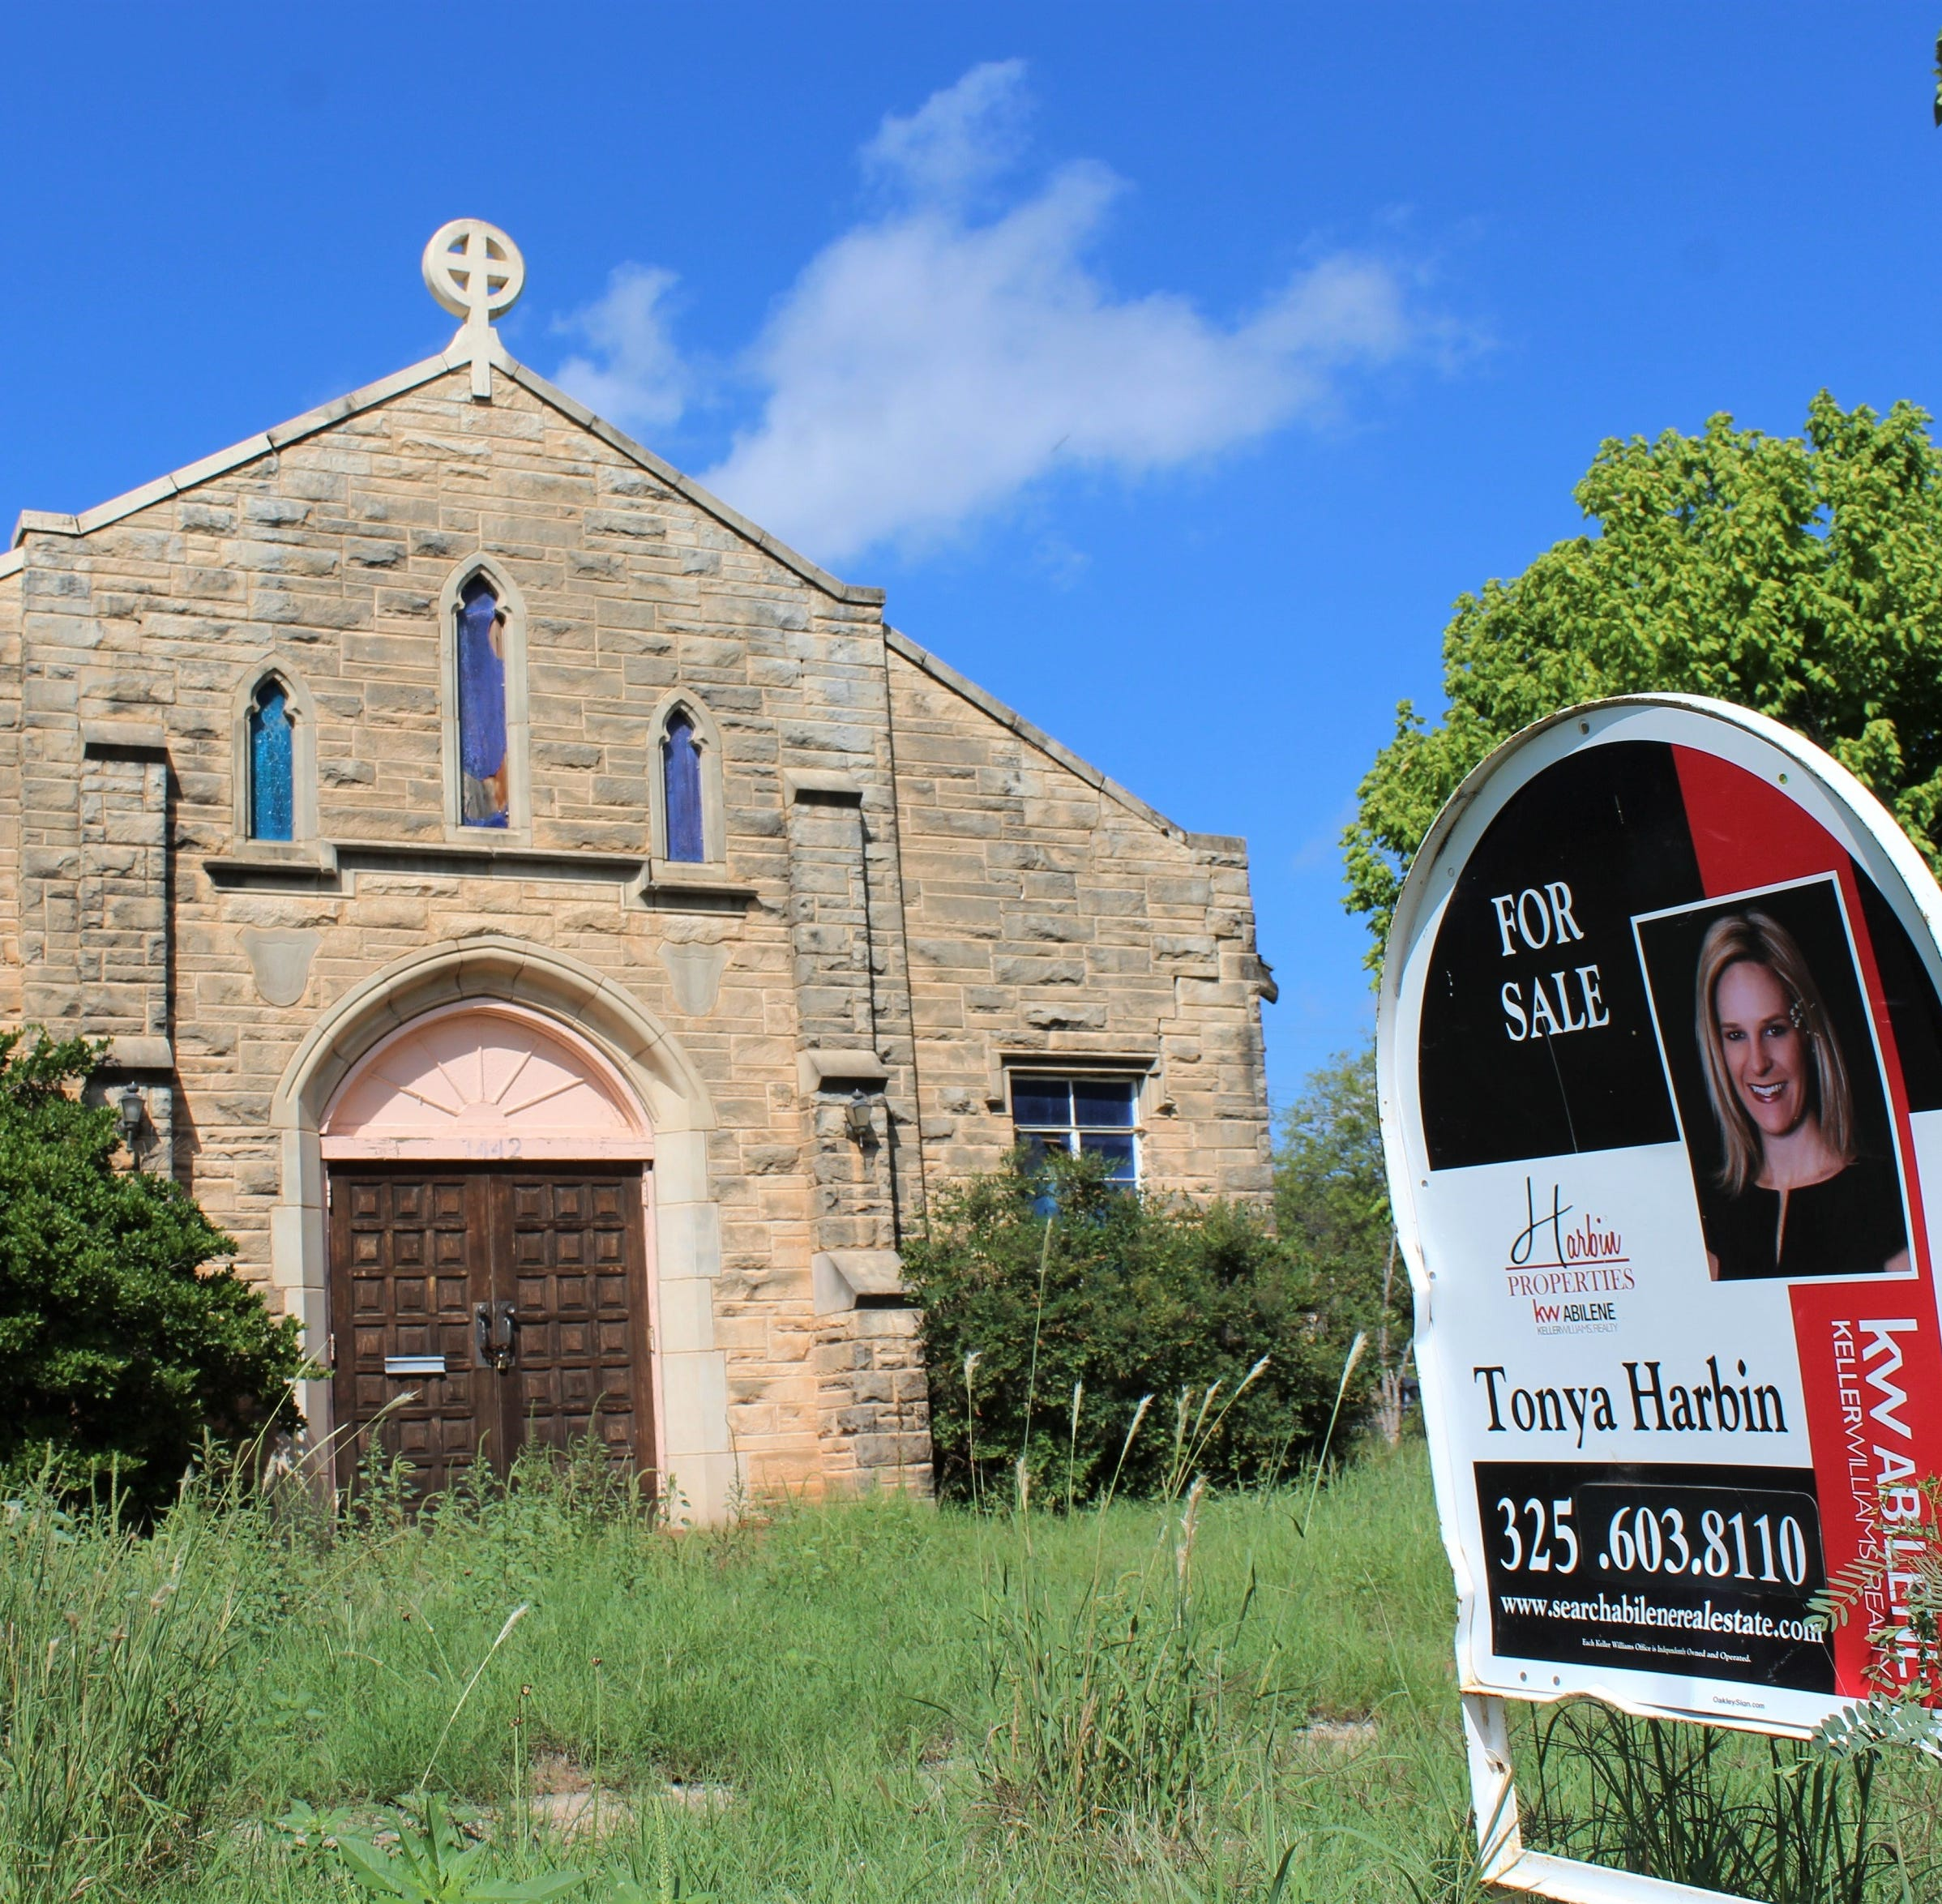 Does a church for sale in Abilene have a prayer?